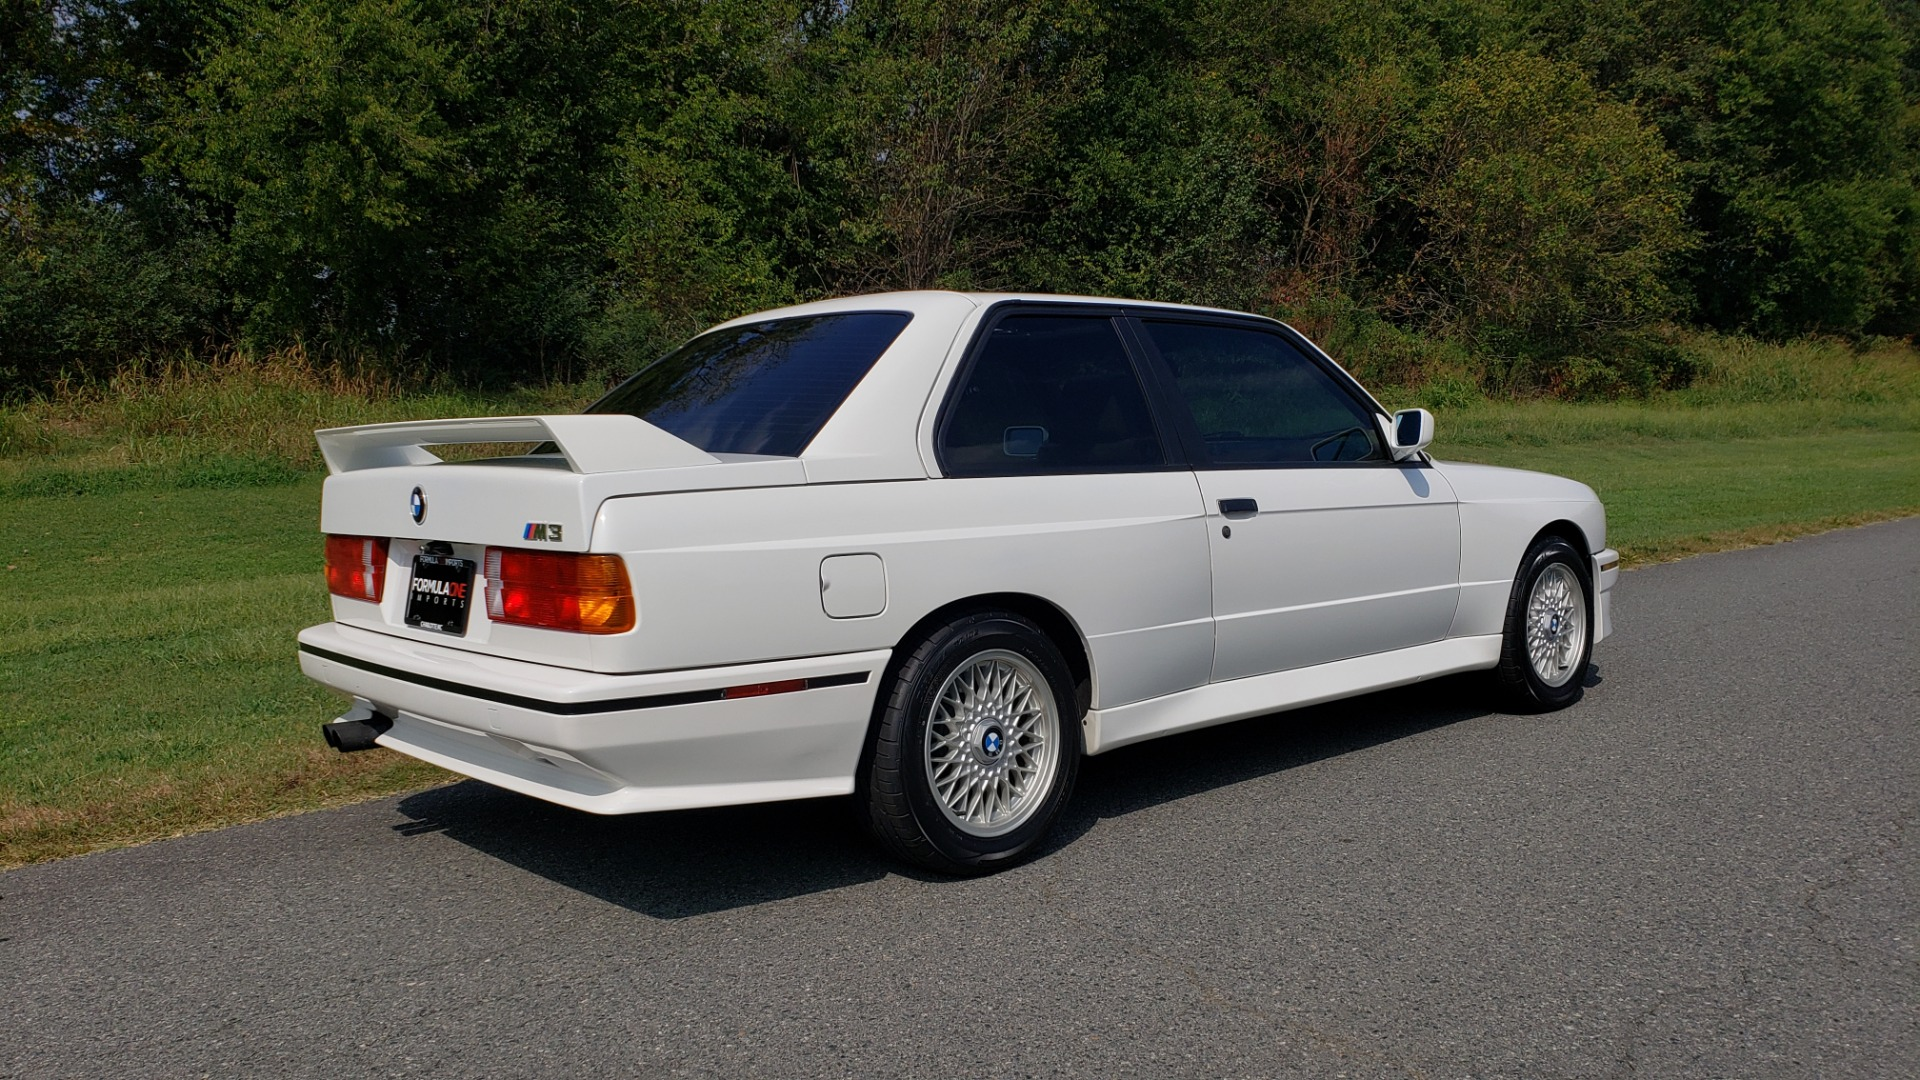 Used 1989 BMW M3 COUPE 2DR / 5-SPEED MAN / LOW MILES / SUPER CLEAN for sale Sold at Formula Imports in Charlotte NC 28227 26